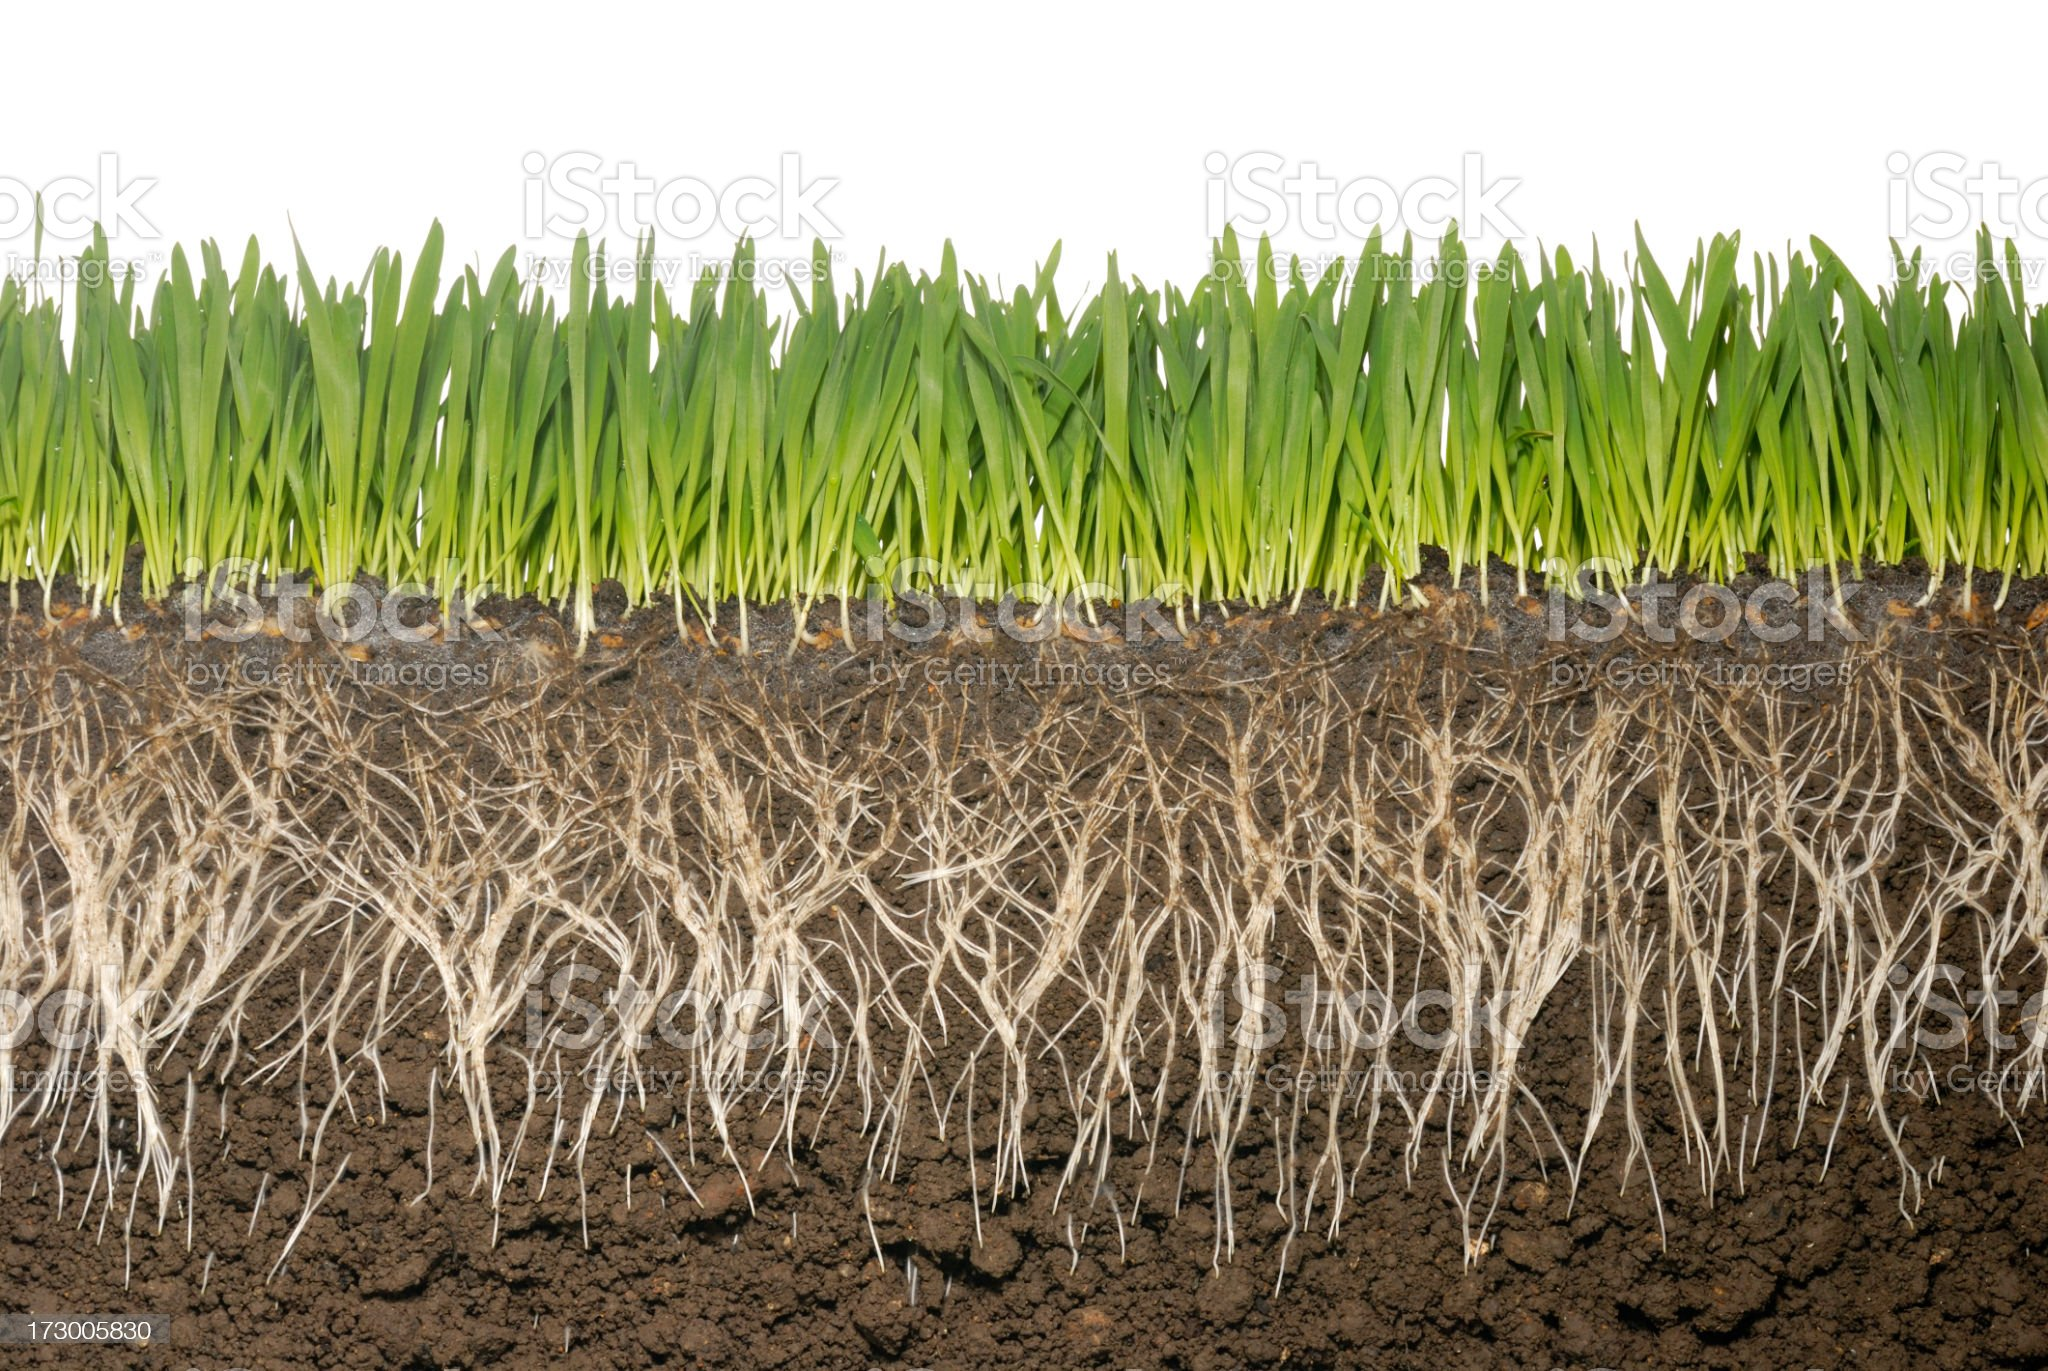 Cross section of grass and grass roots with soil royalty-free stock photo